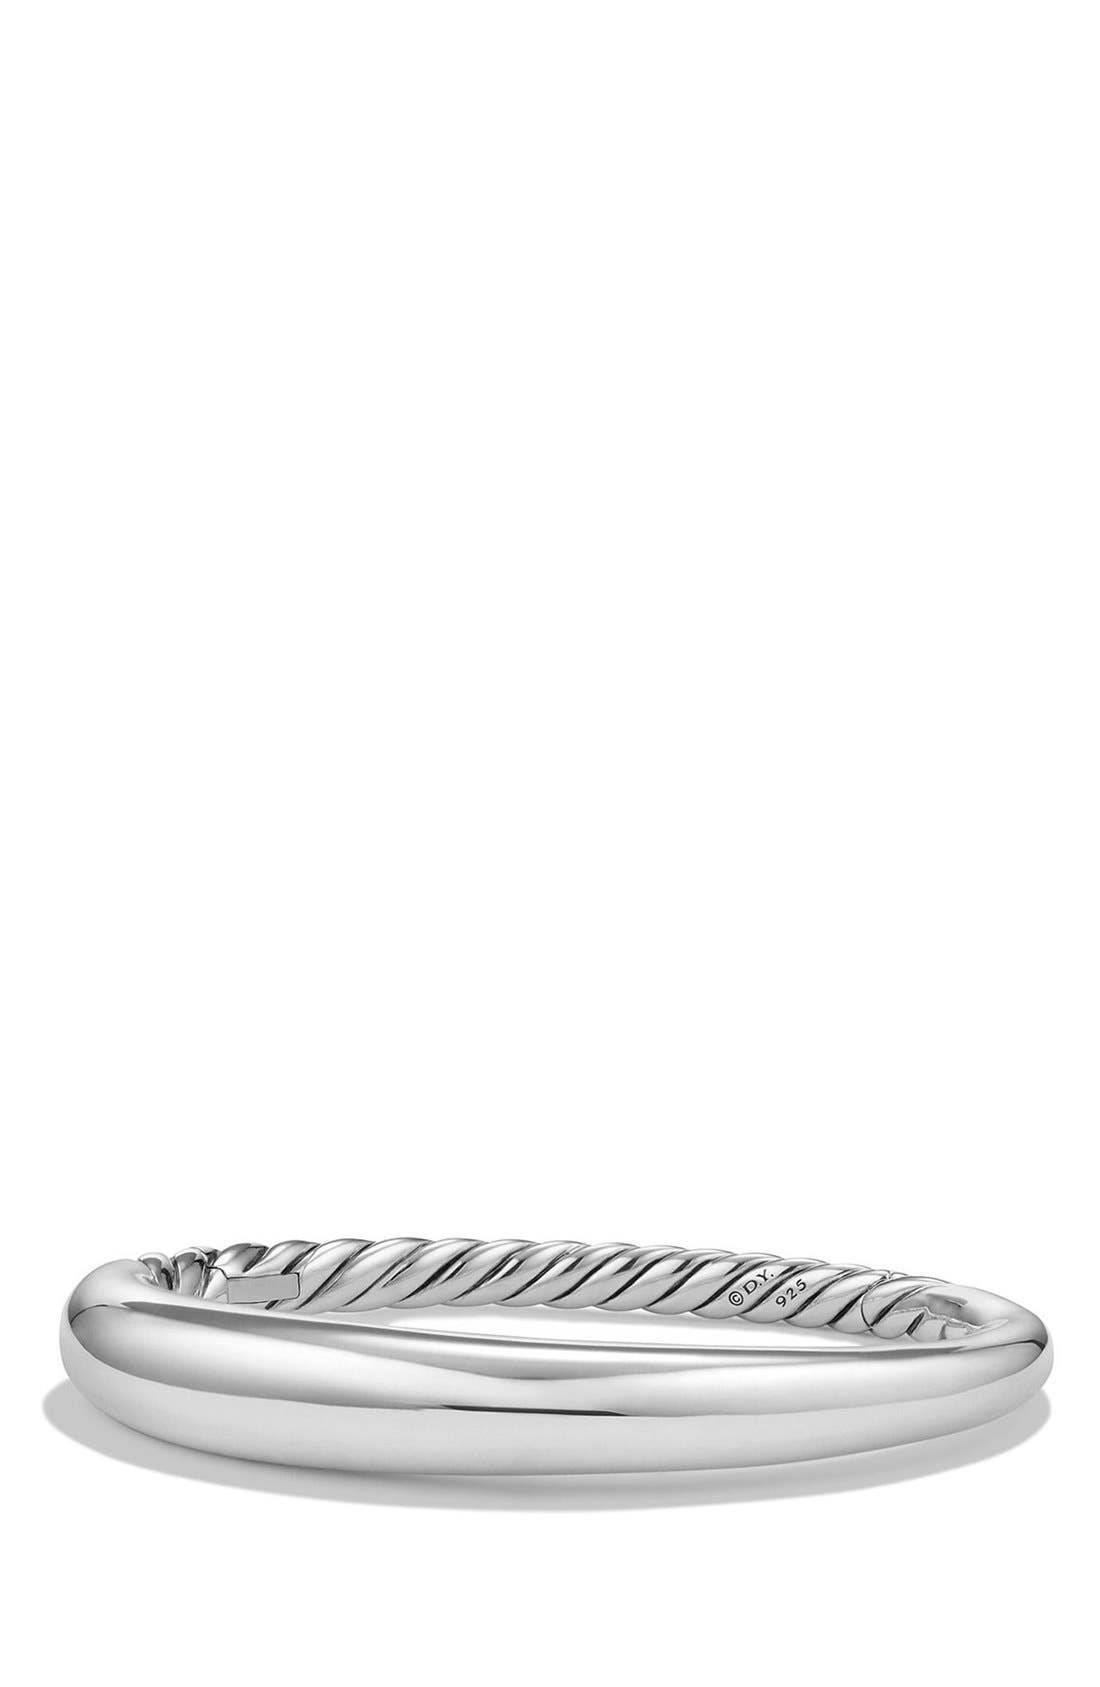 DAVID YURMAN 'Pure Form' Small Sterling Silver Bracelet, Main, color, SILVER